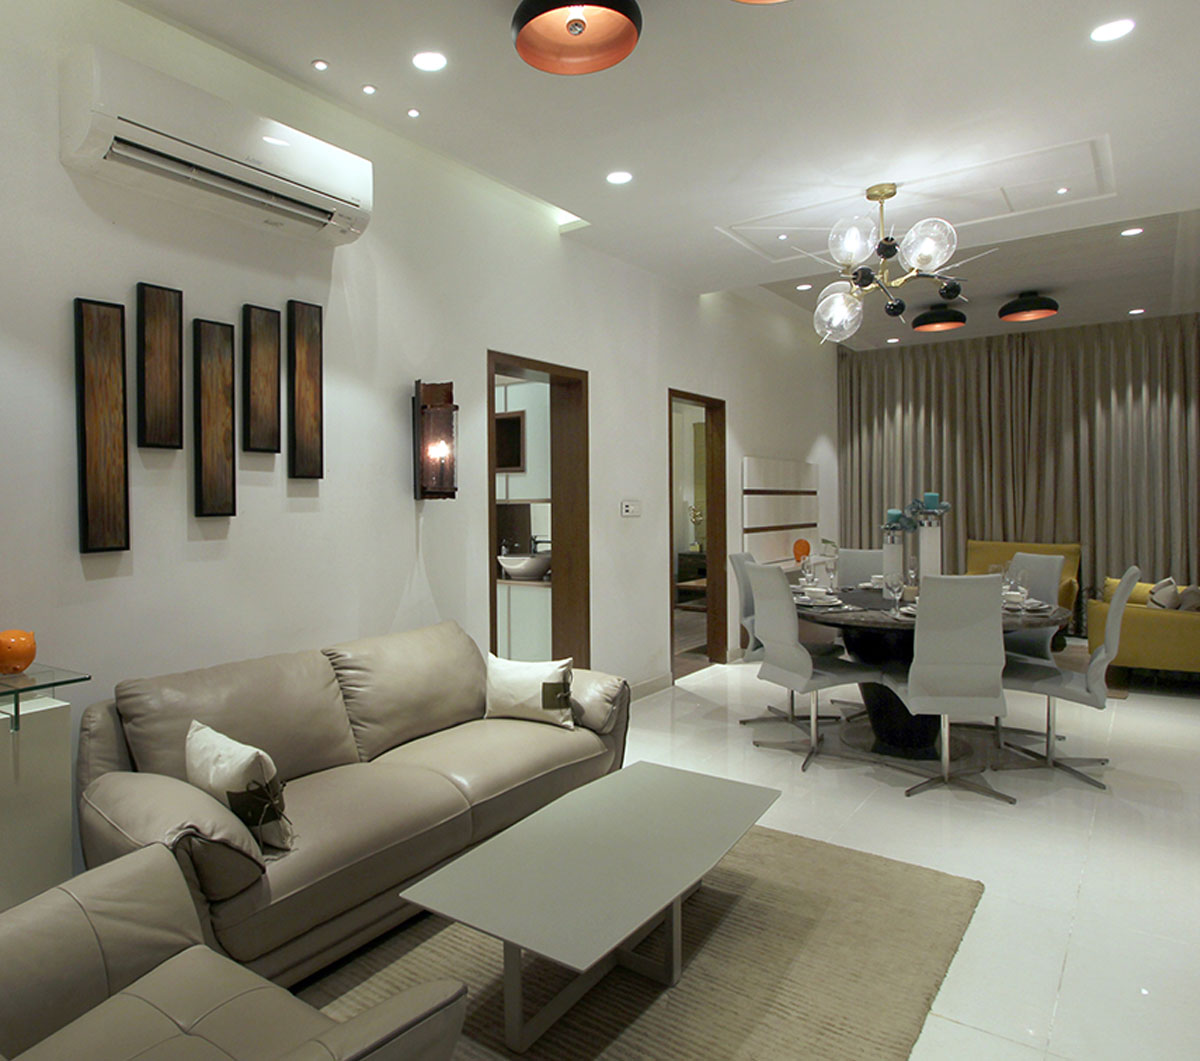 Importance Of A Flat For Your Family 2bhk Flat In Hyderabad